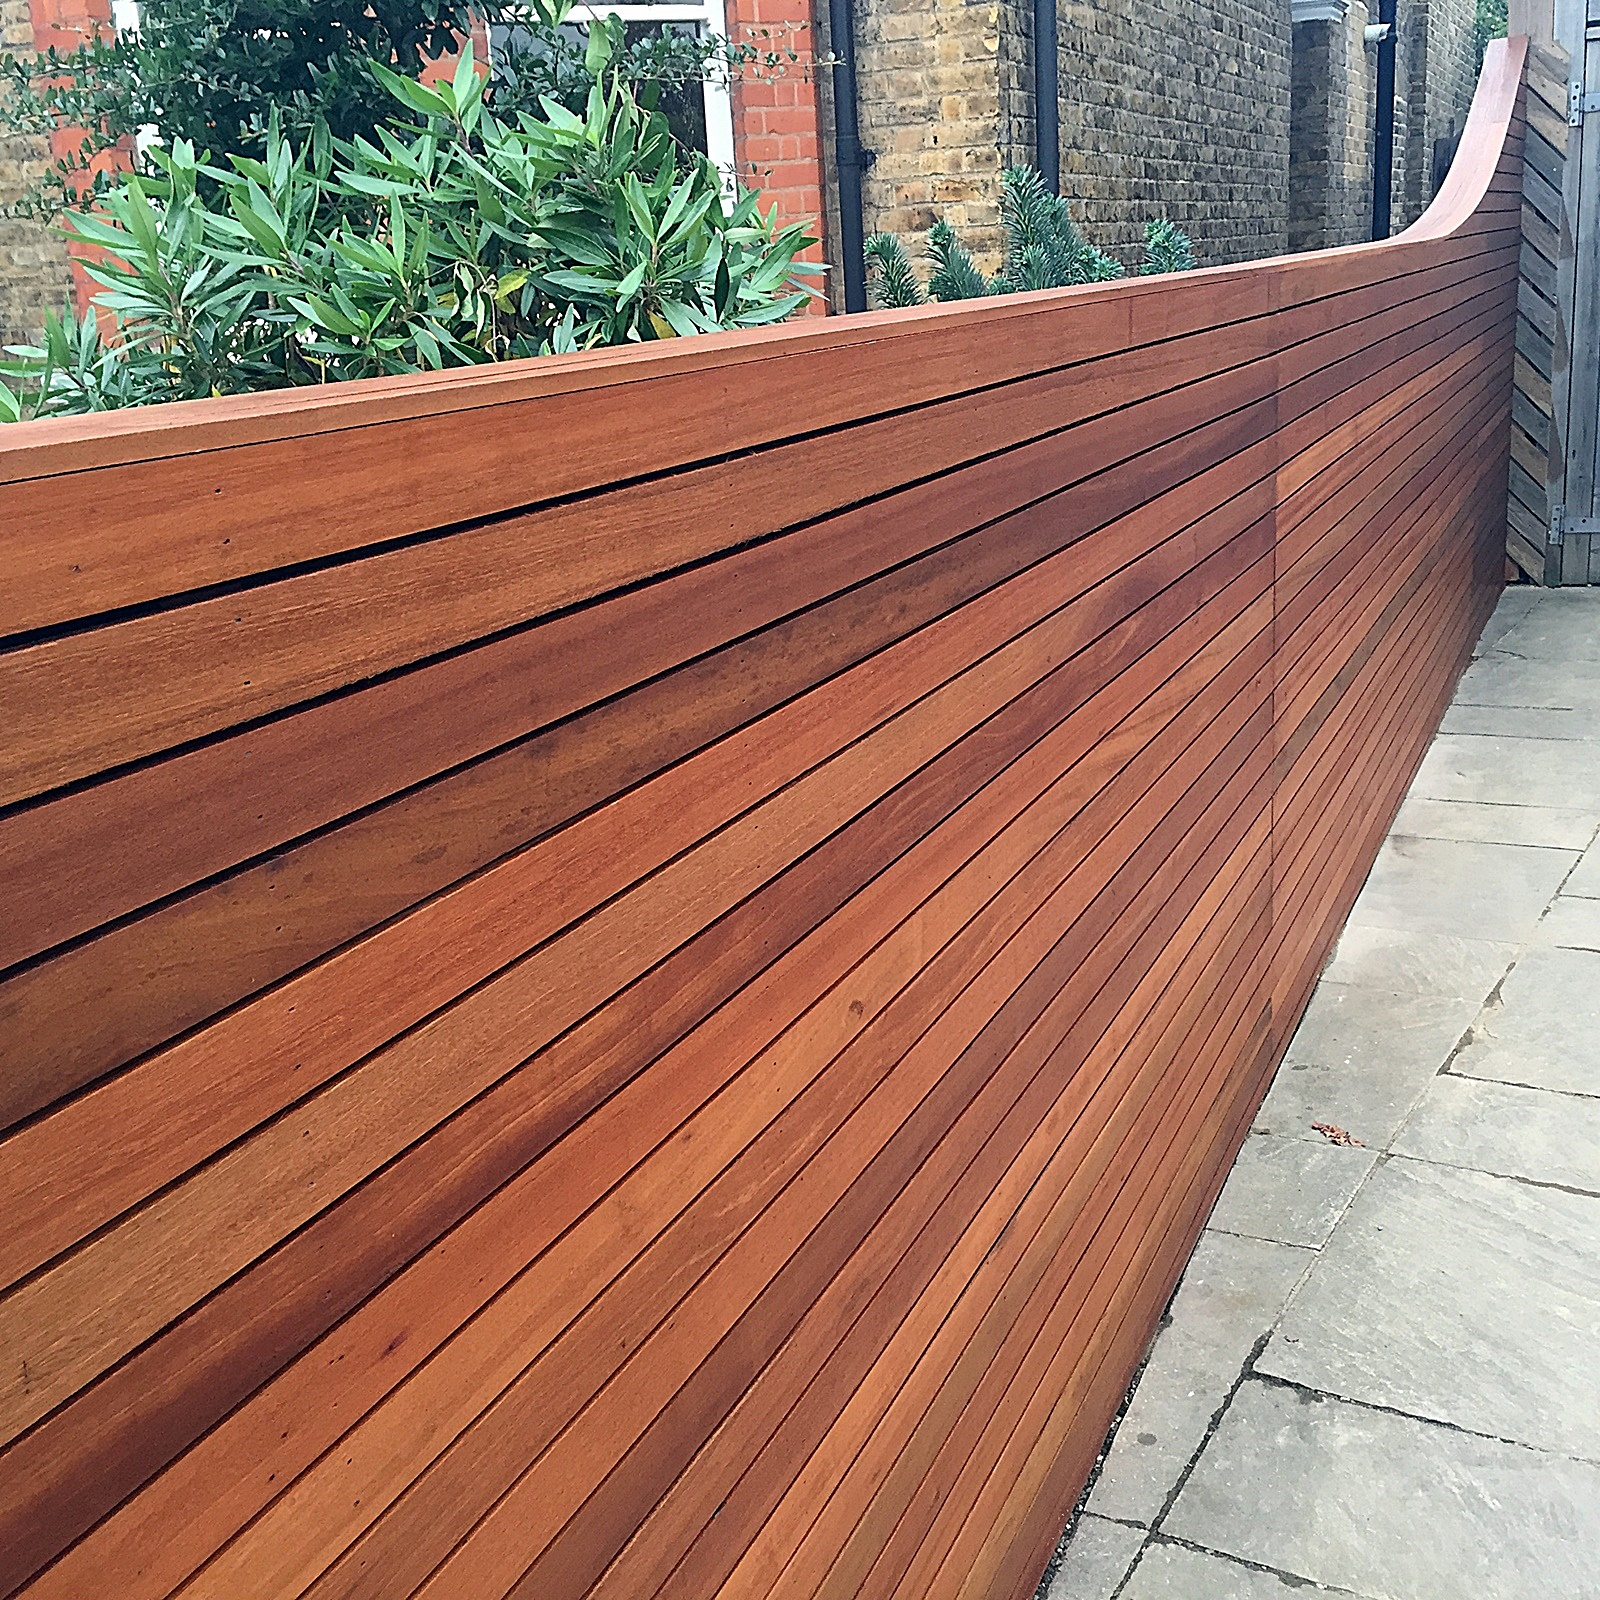 Horizontal cedar hardwood strip wood trellis screen fence for Wood screen fence